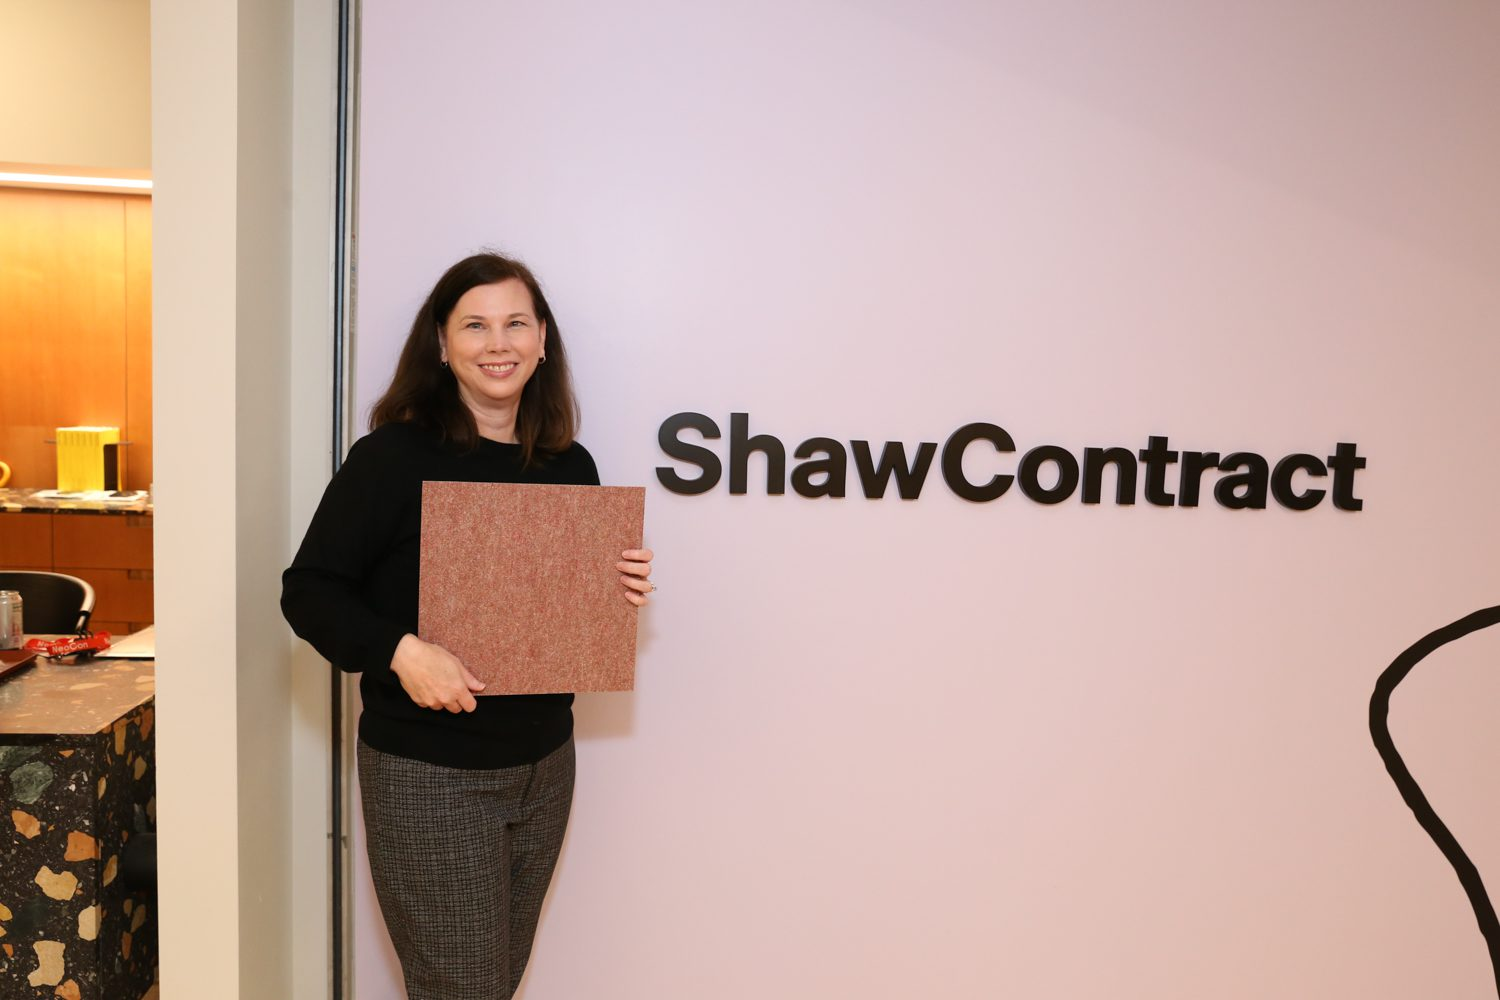 Ashley Ginn, design director community studio at Shaw Contract with the brand's BottleFloor made from 30% PET bottles.